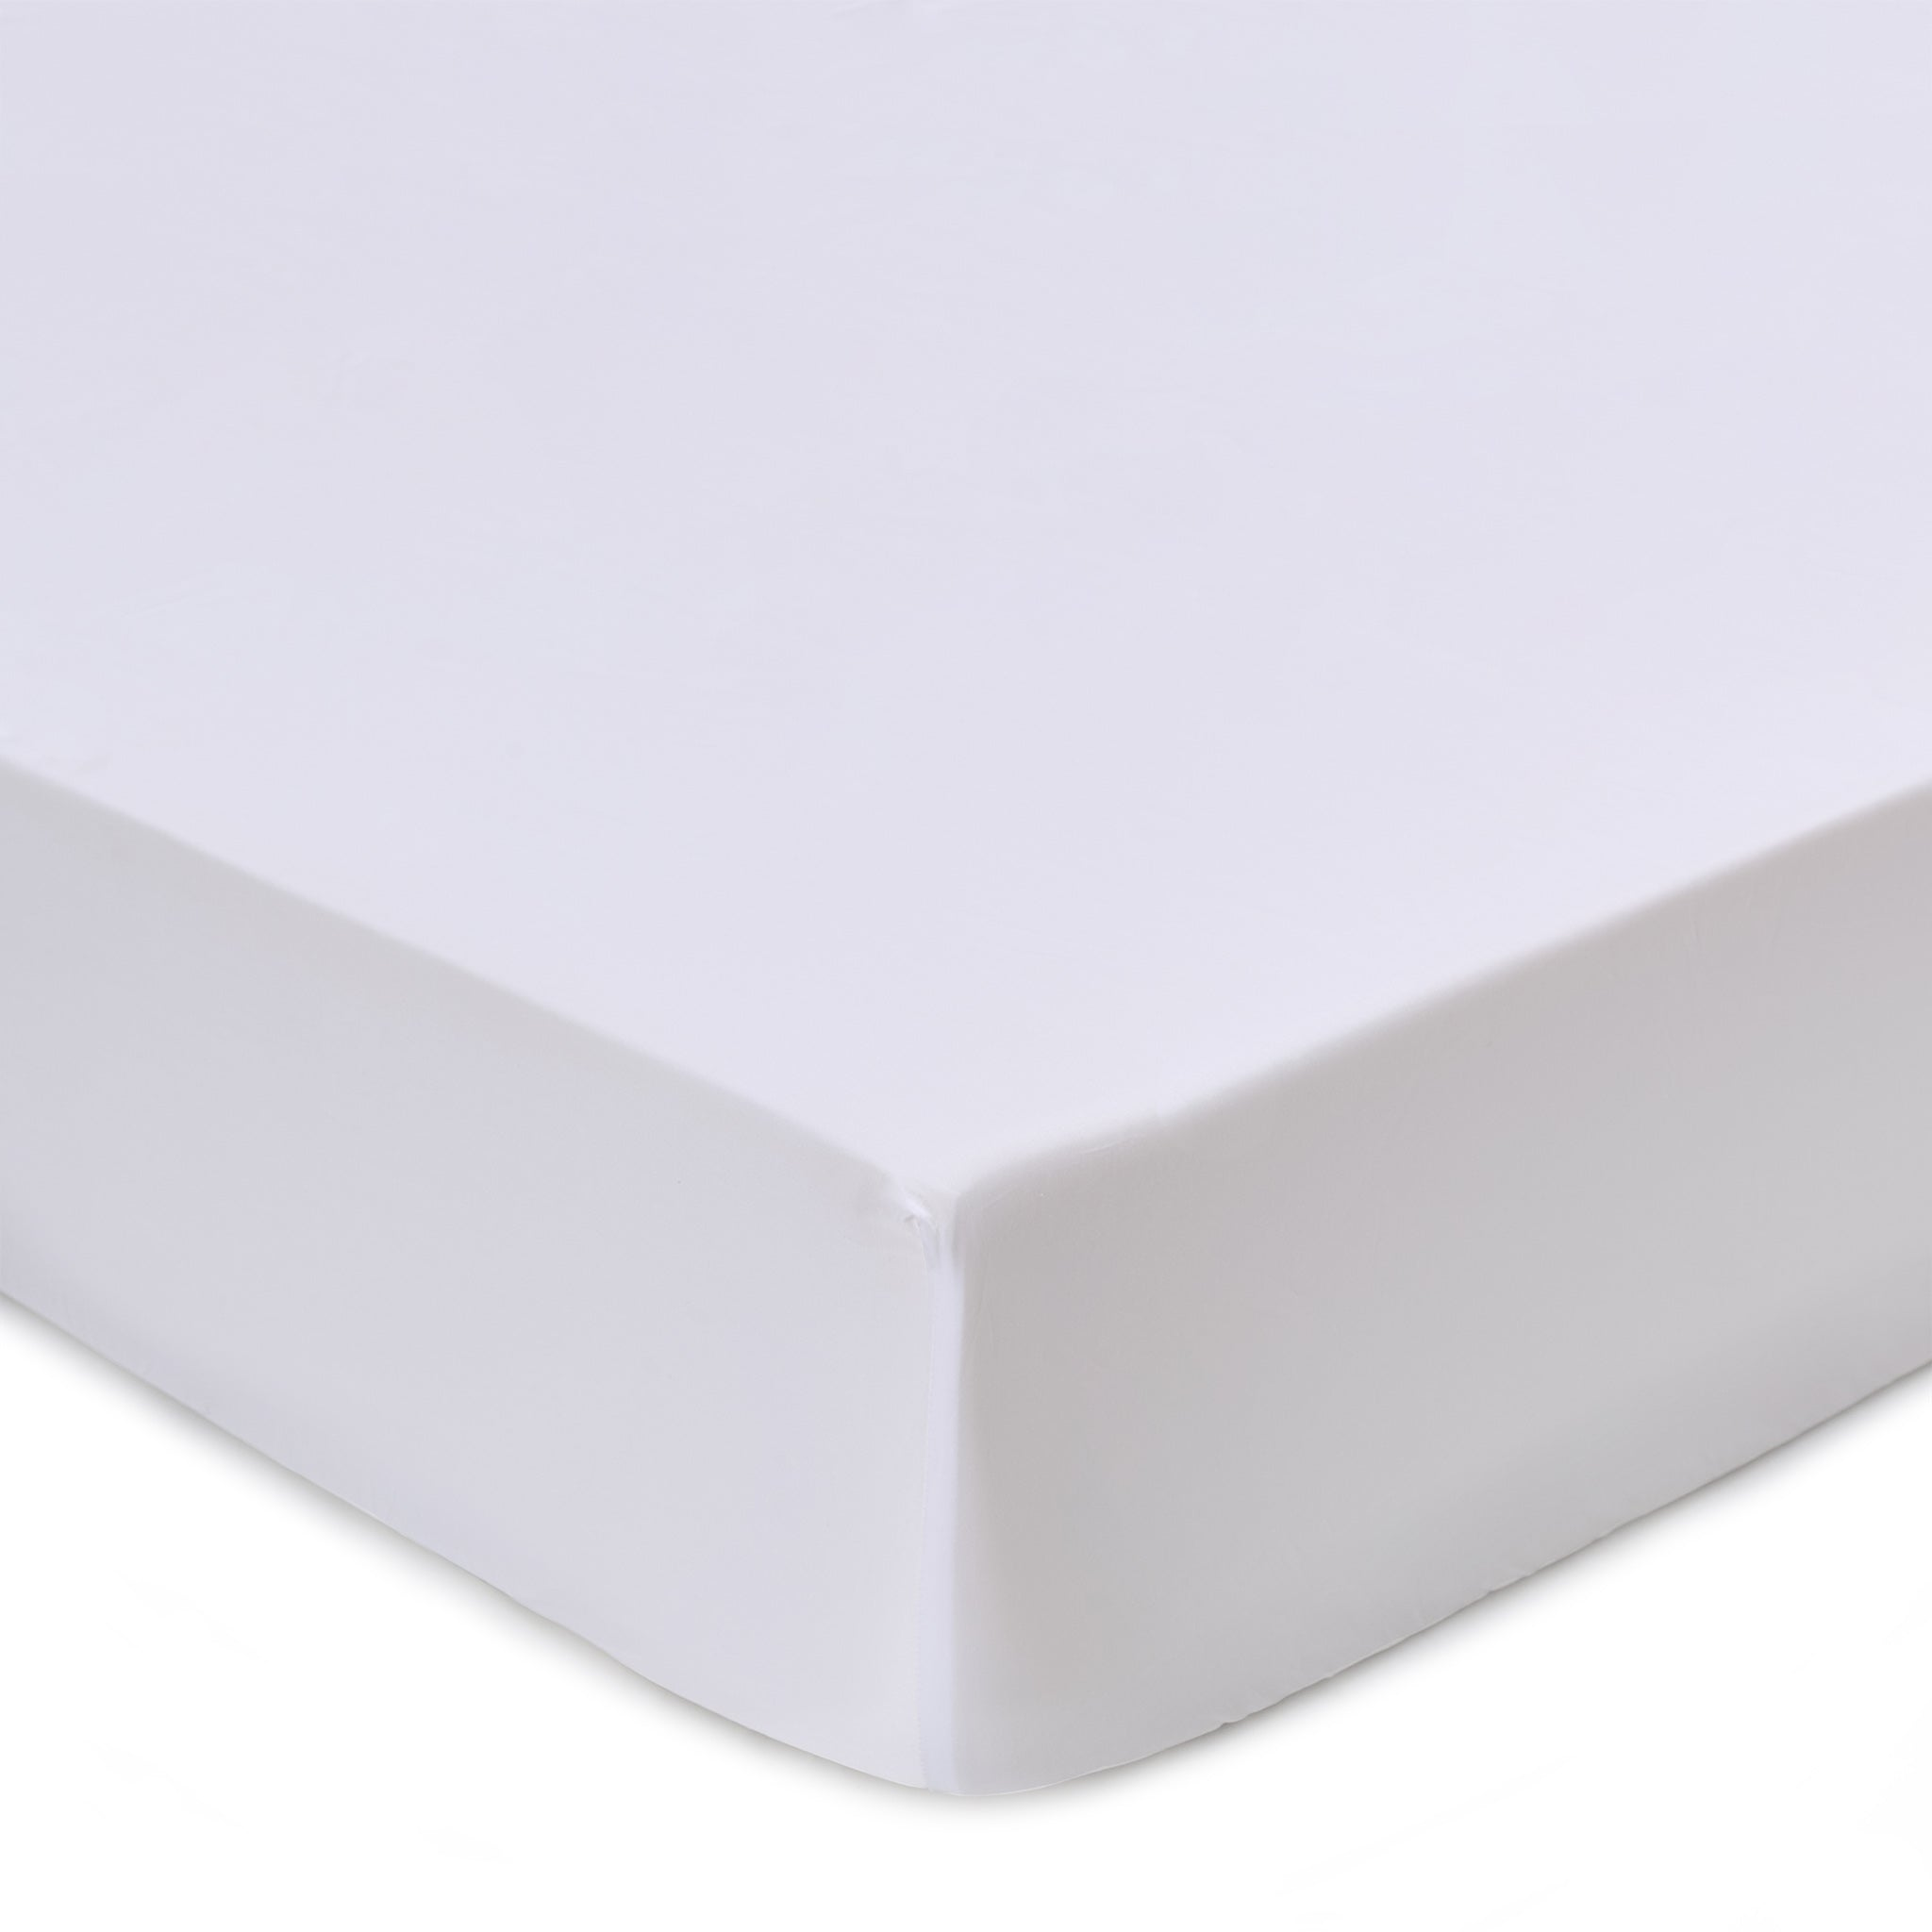 Vivy Fitted Sheet white, 100% cotton